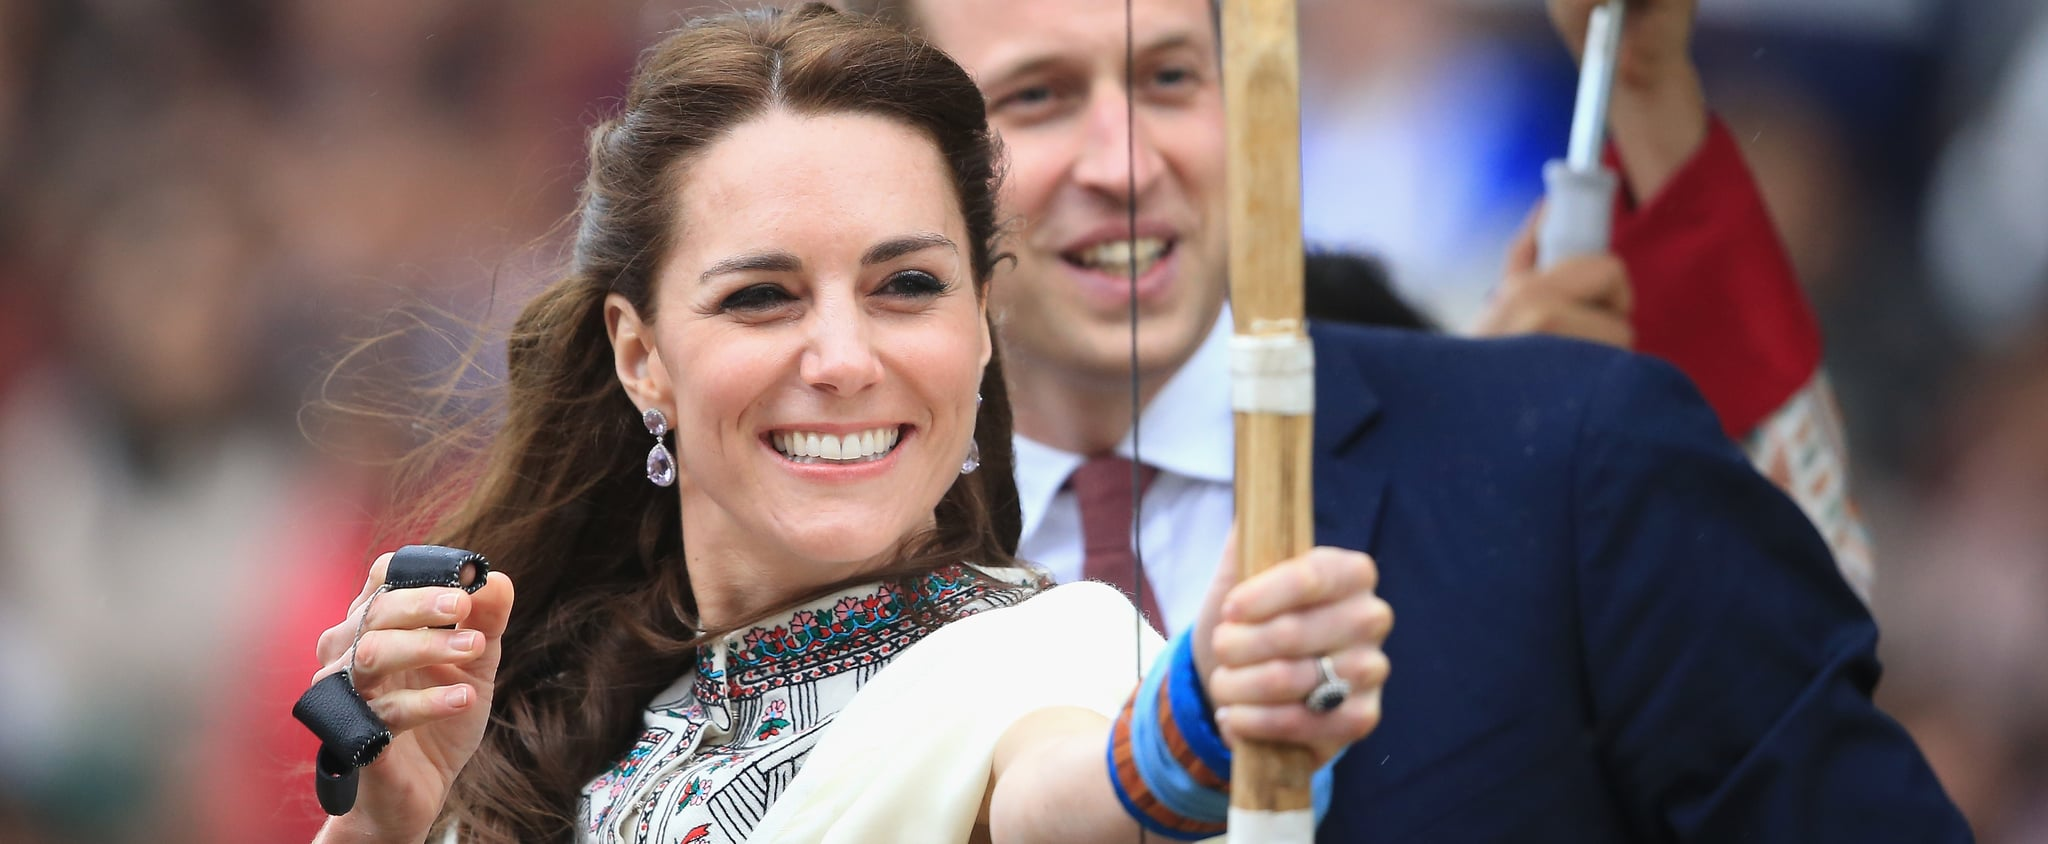 See Pictures of Kate Middleton Playing Sports